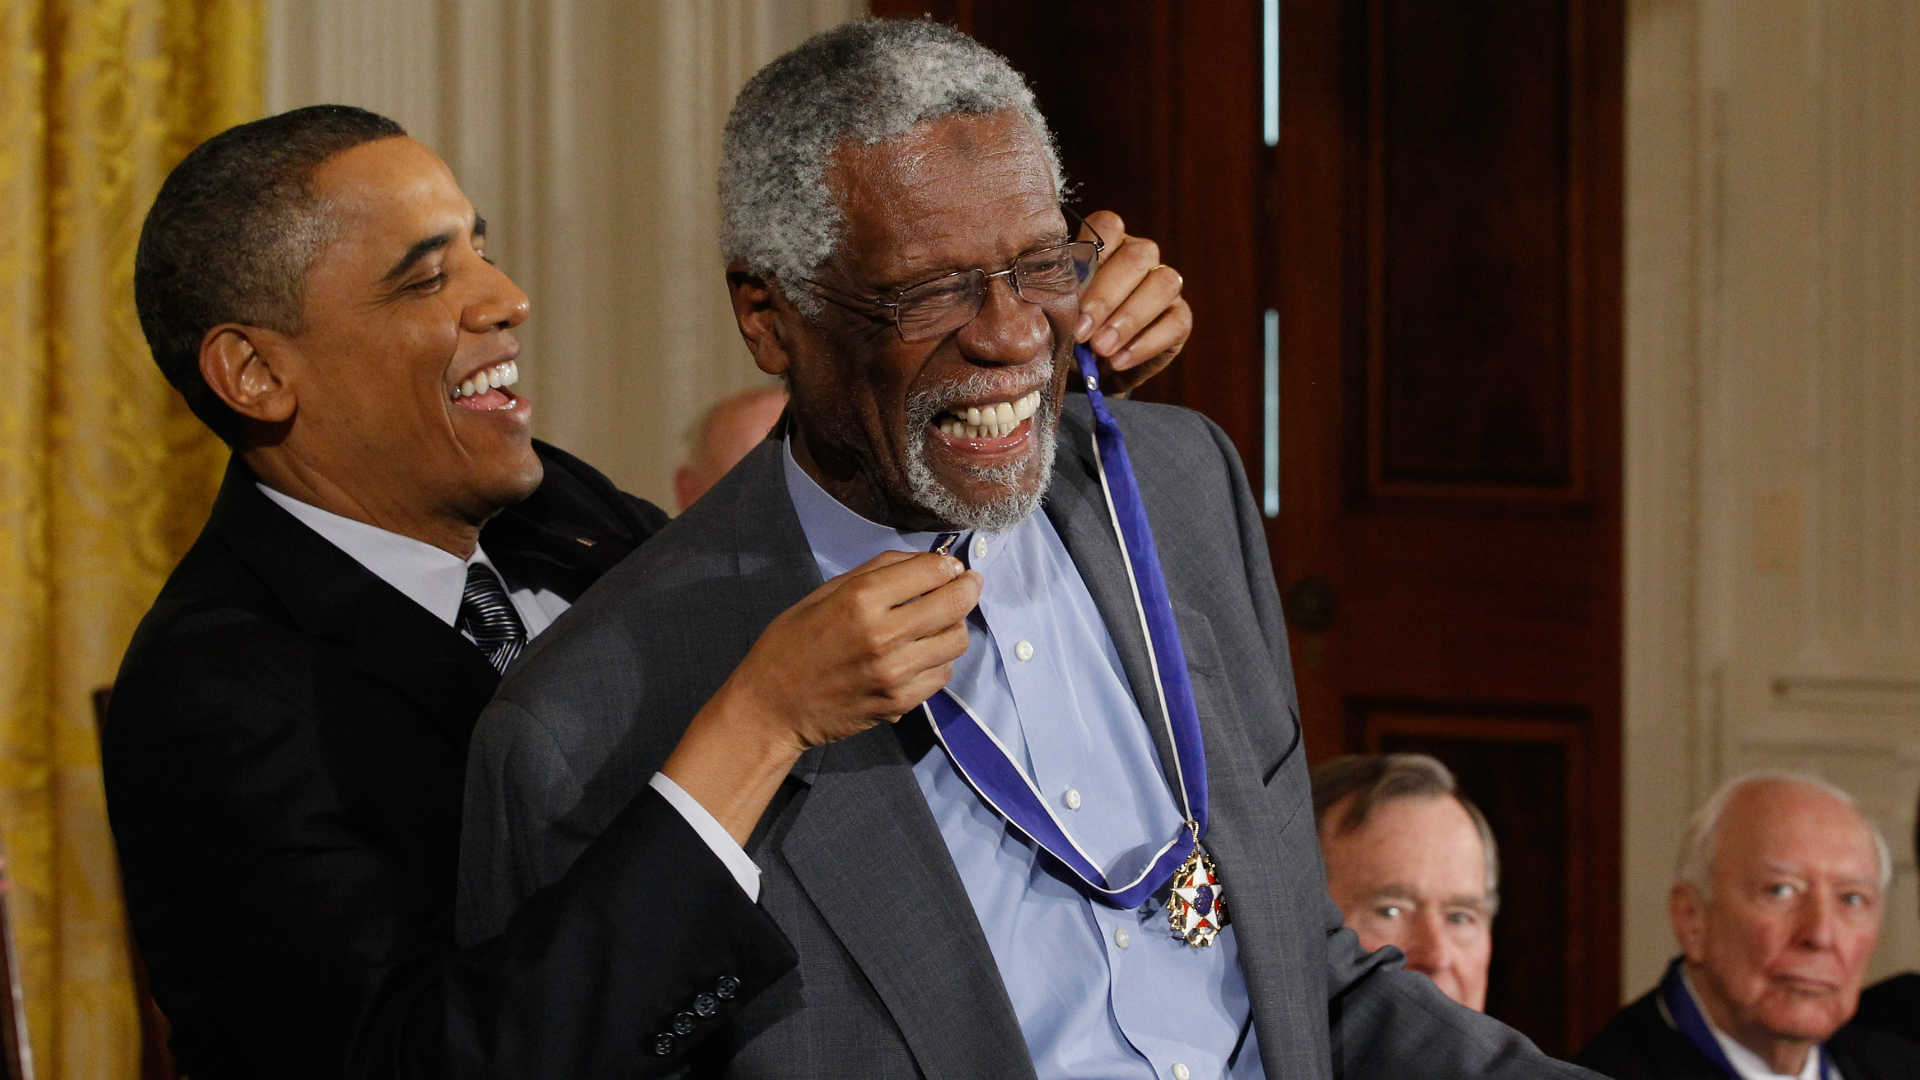 photo shows bill russell kneeling with presidential medal